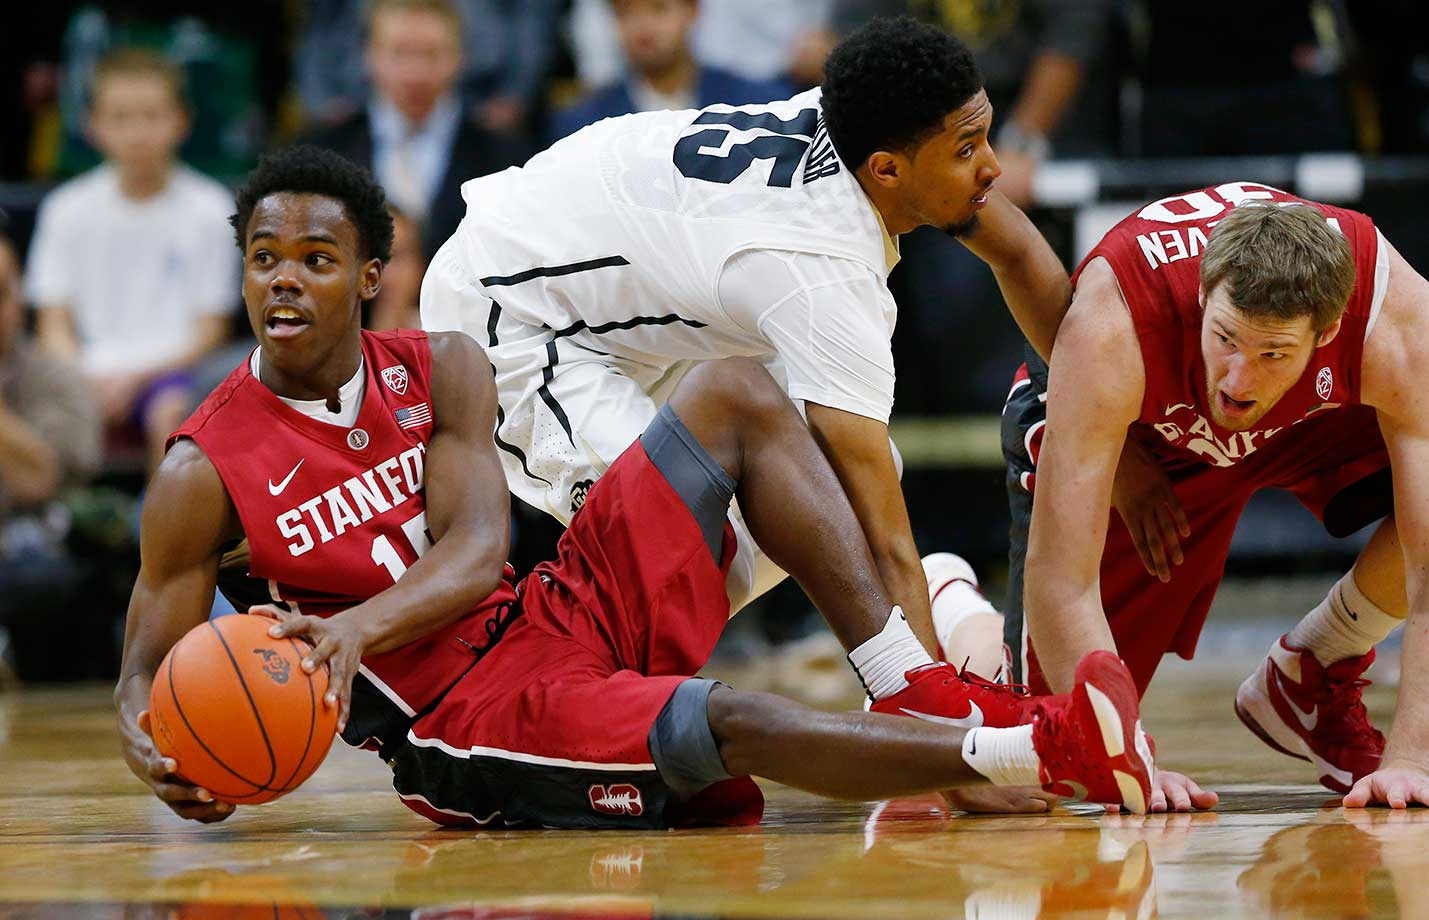 Stanford guard Marcus Allen looks to pass after picking up a loose ball in a scramble with Colorado guard Dominique Collier and Stanford center Grant Verhoeven in Boulder, Colo.